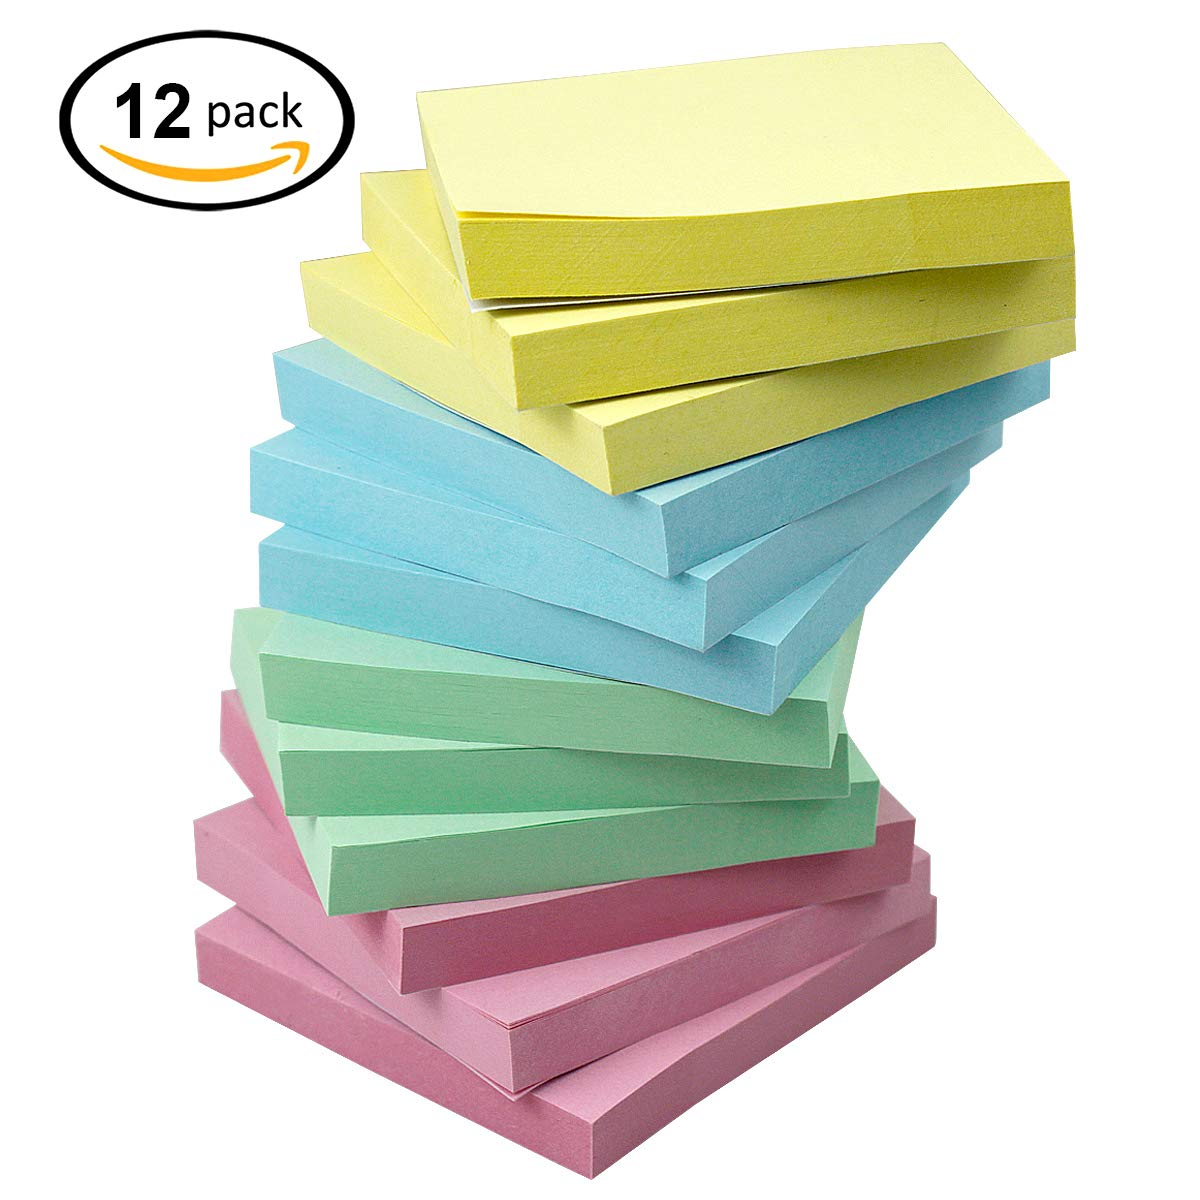 Sticky Notes,Disveo 12 Pads/Pack Colorful Sticky Notes 3x3inch 100 Sheet Per Pad Book Marks Memo Self-Stick with Strong Viscosity Message Pads for Office/Home/School (Green/Blue/Yellow/Pink)